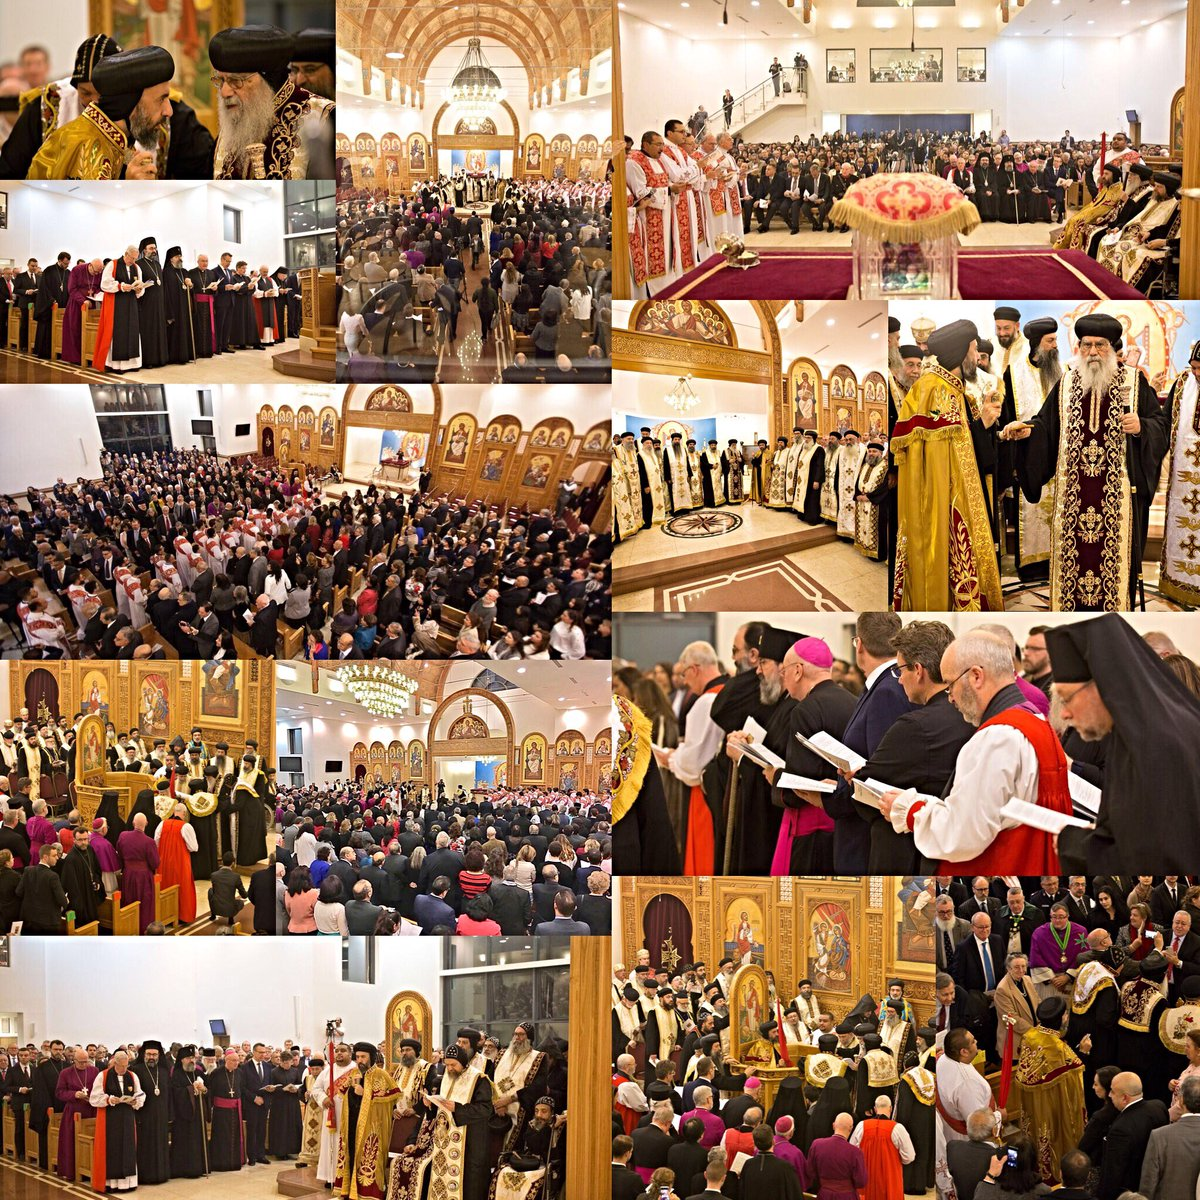 Impossible to express my appreciation for love and support felt from every individual attending this momentous time of prayer for the birth of our @CopticDiocese of #London: our #Coptic bishops, community and clergy, our ecumenical friends and friends from broader British society<br>http://pic.twitter.com/mvgrj3ERCa